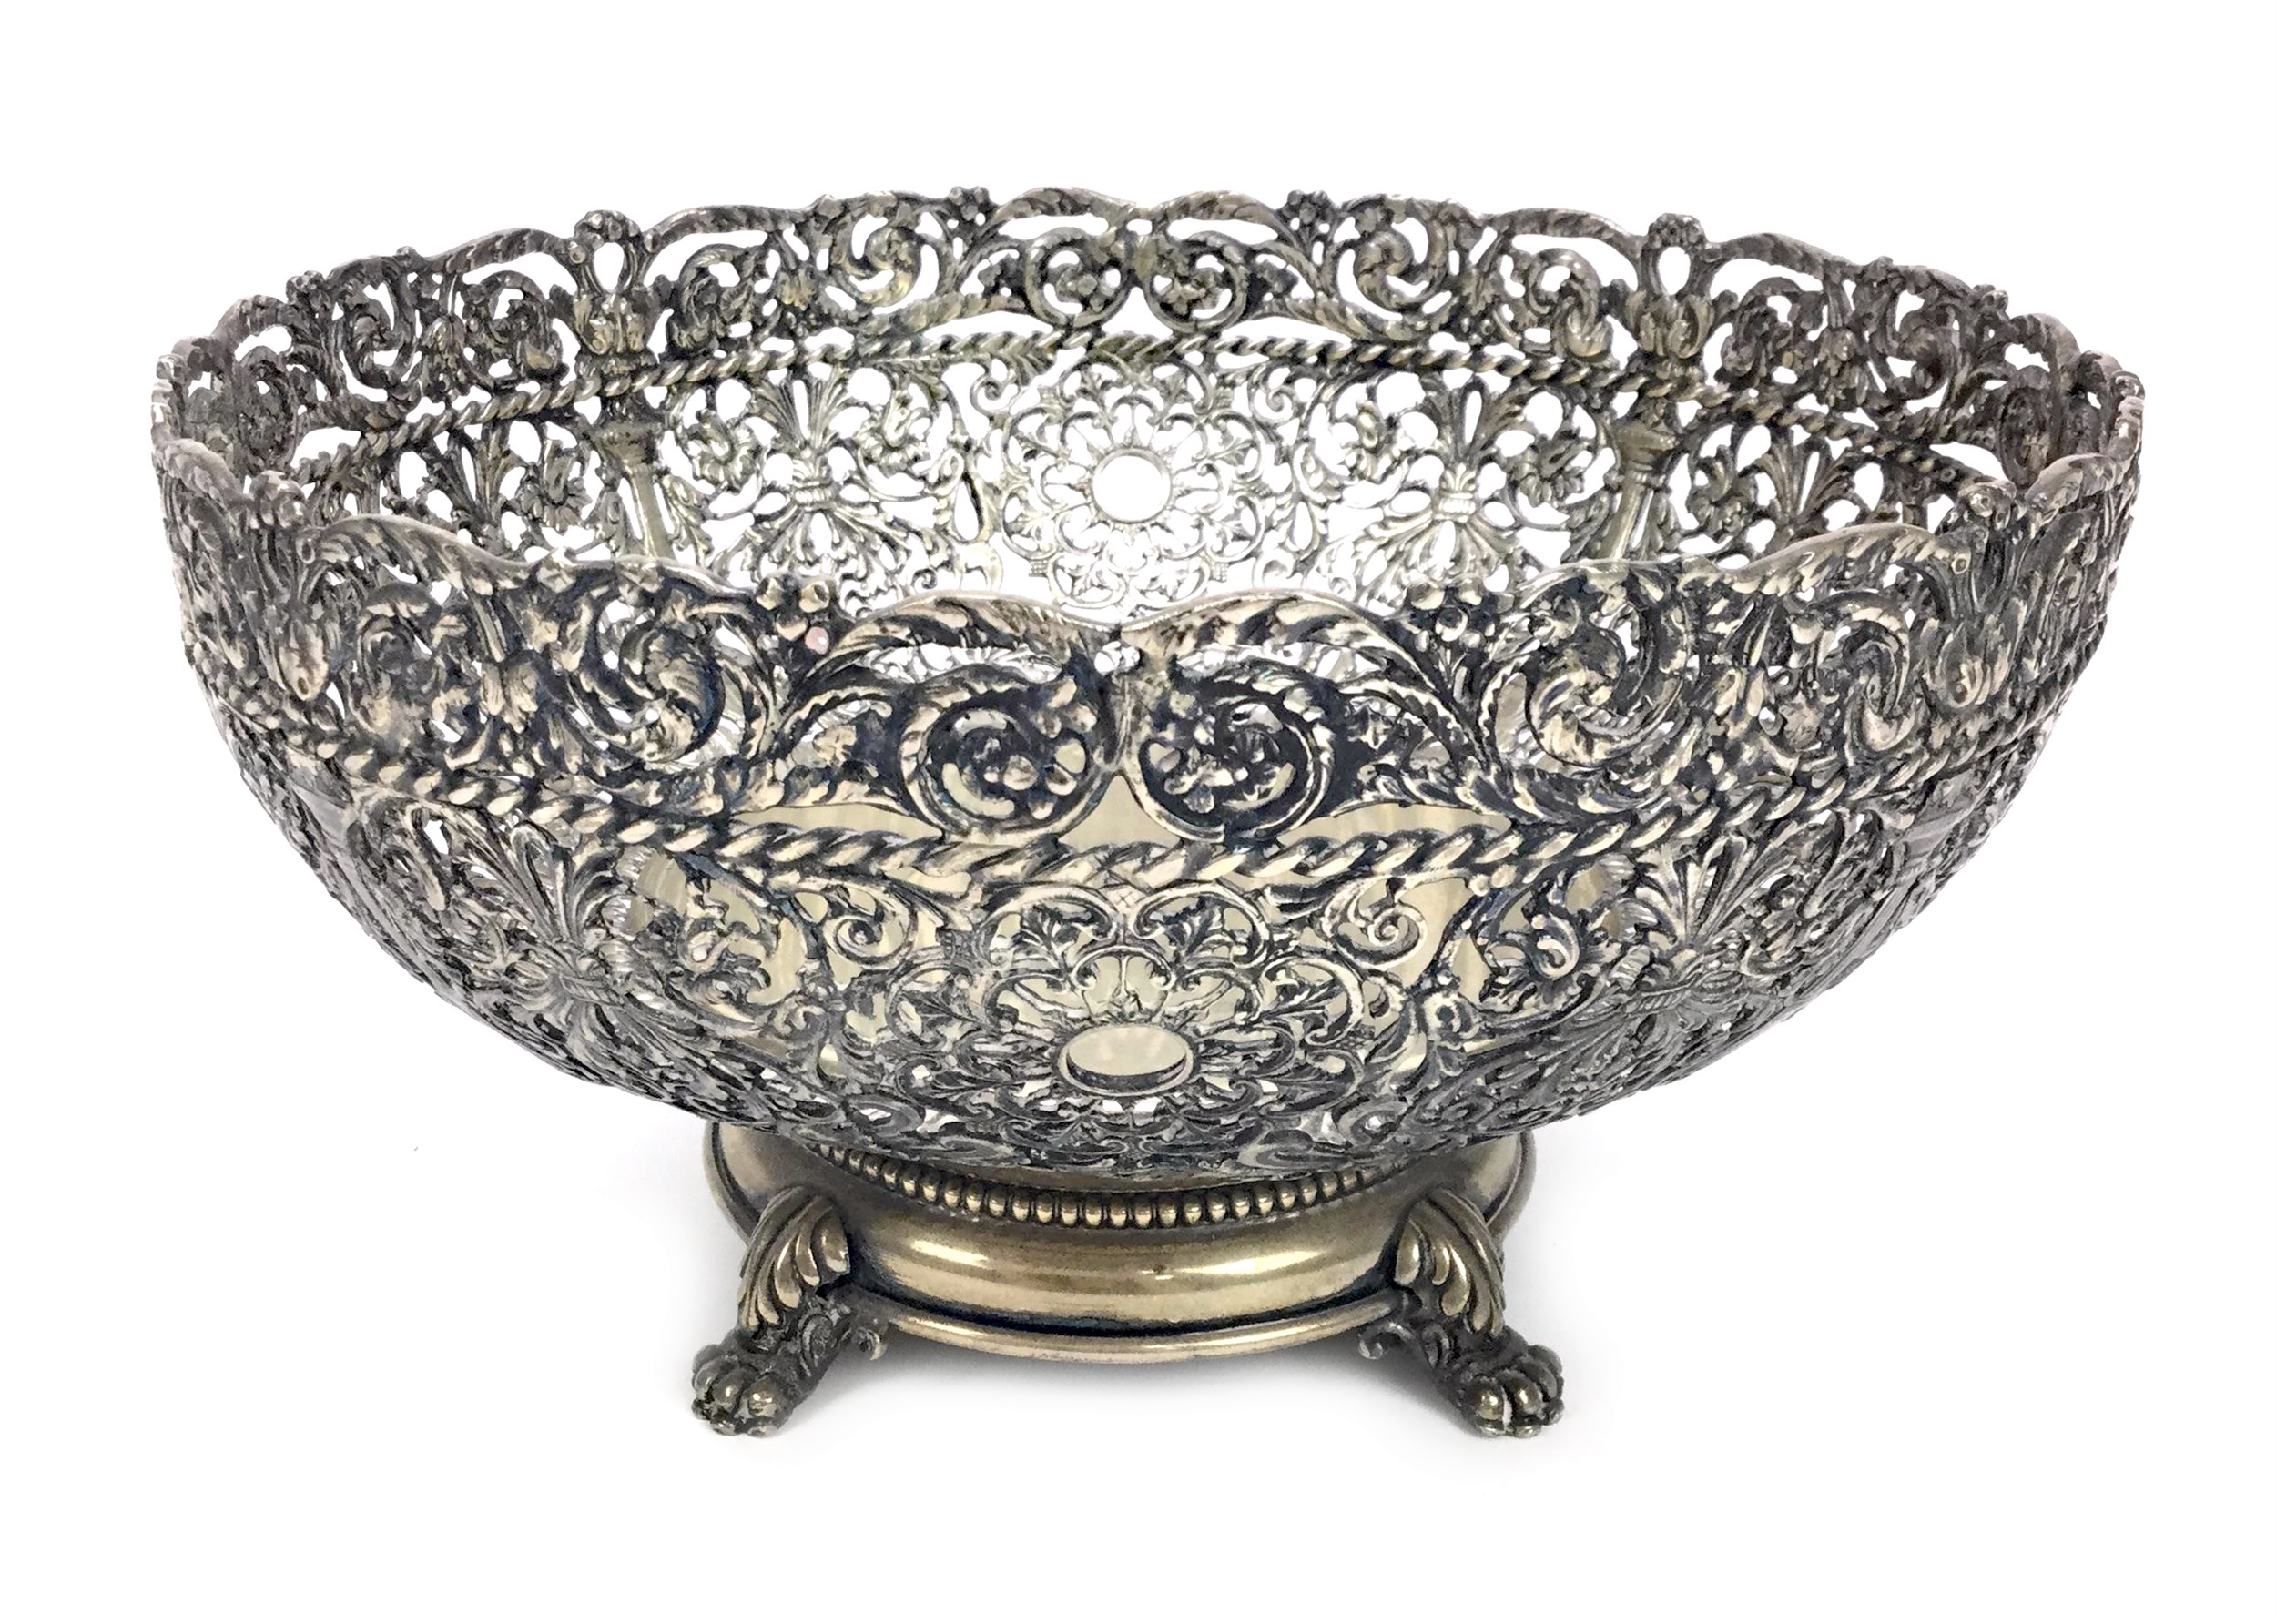 Lot 845 - A CONTINENTAL SILVER BOWL